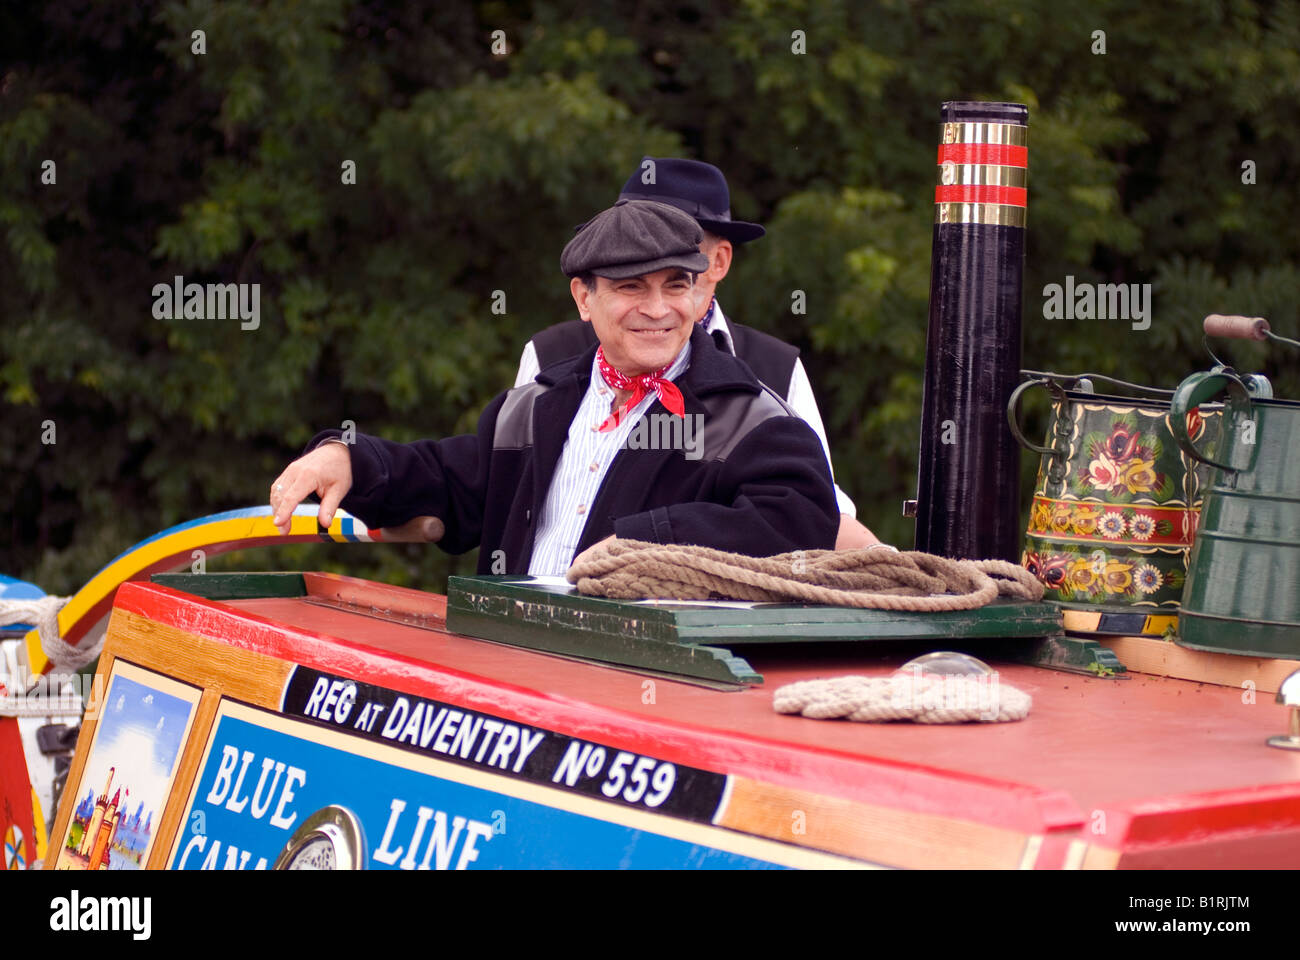 David Suchet OBE officially opening the 2008 Braunston Historic Narrowboat Rally from the traditional butty RaymondStock Photo